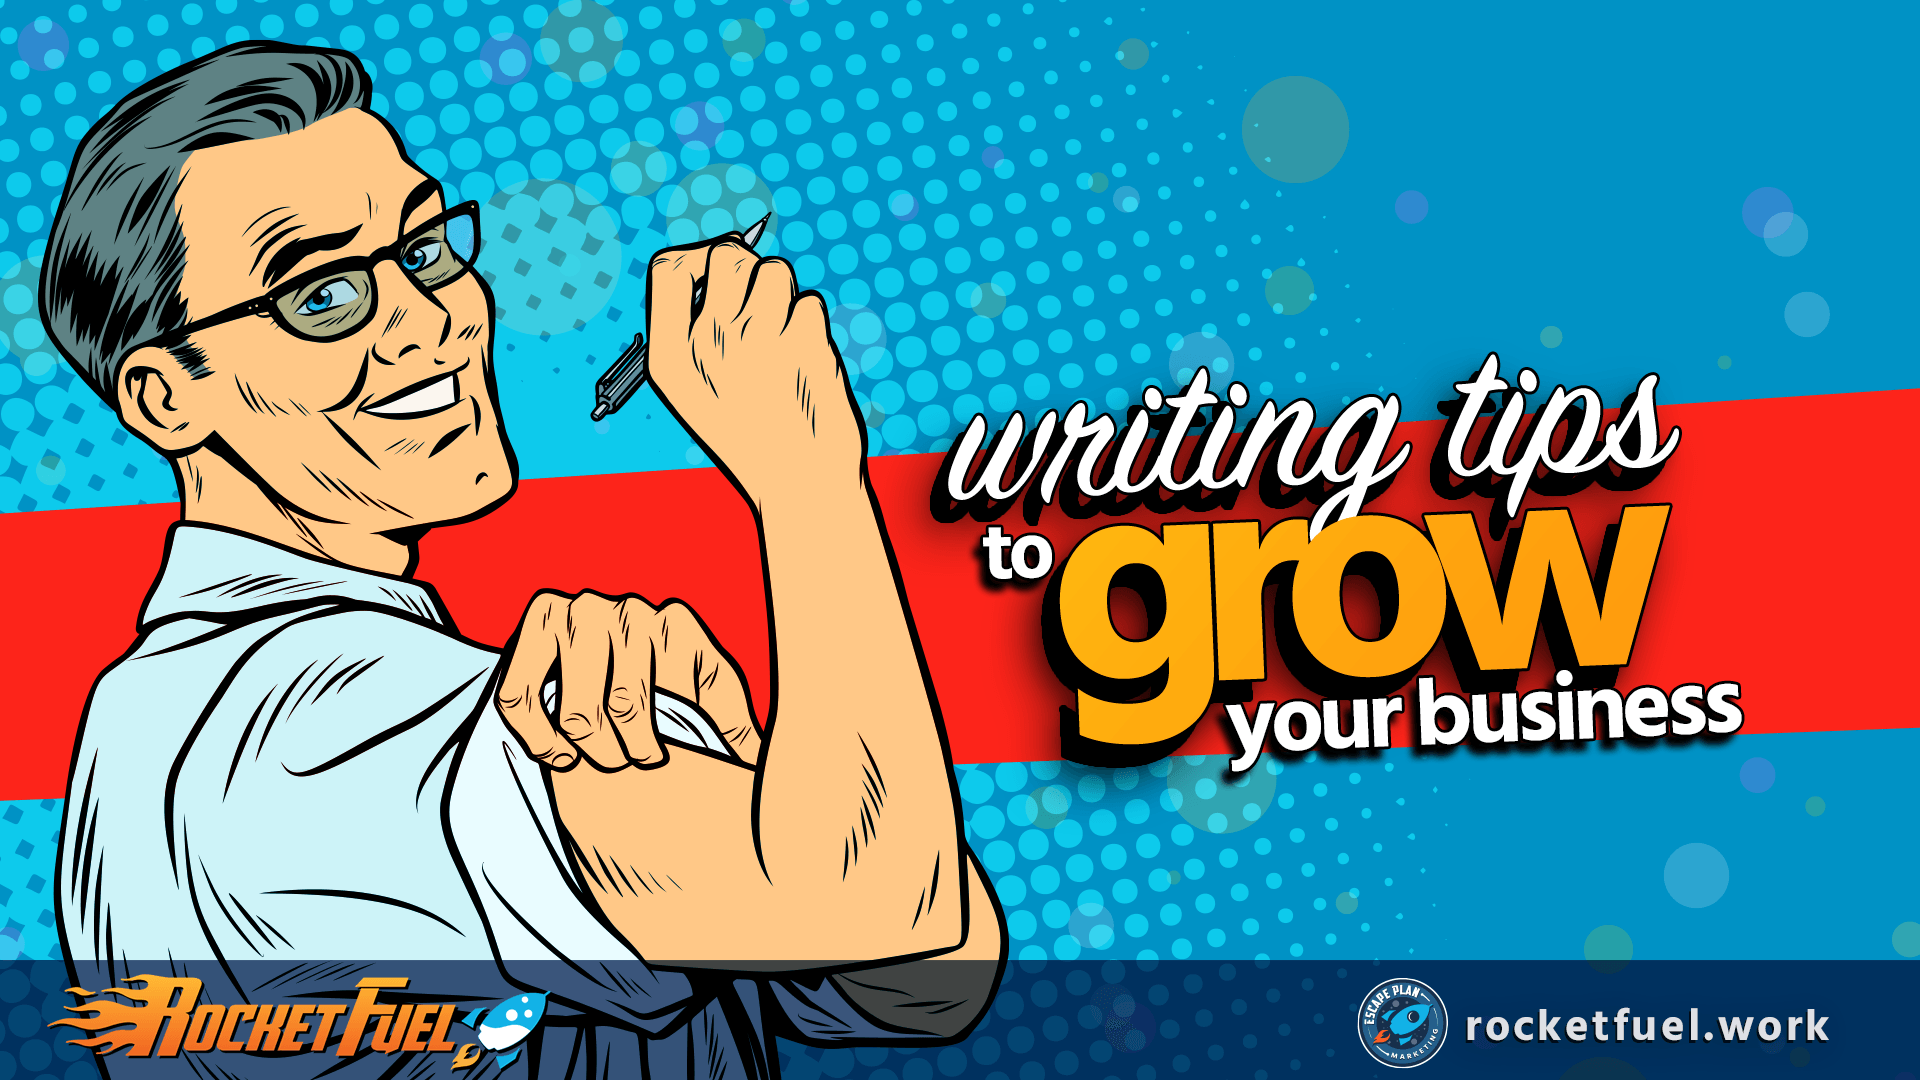 Writing Tips to Grow Your Business